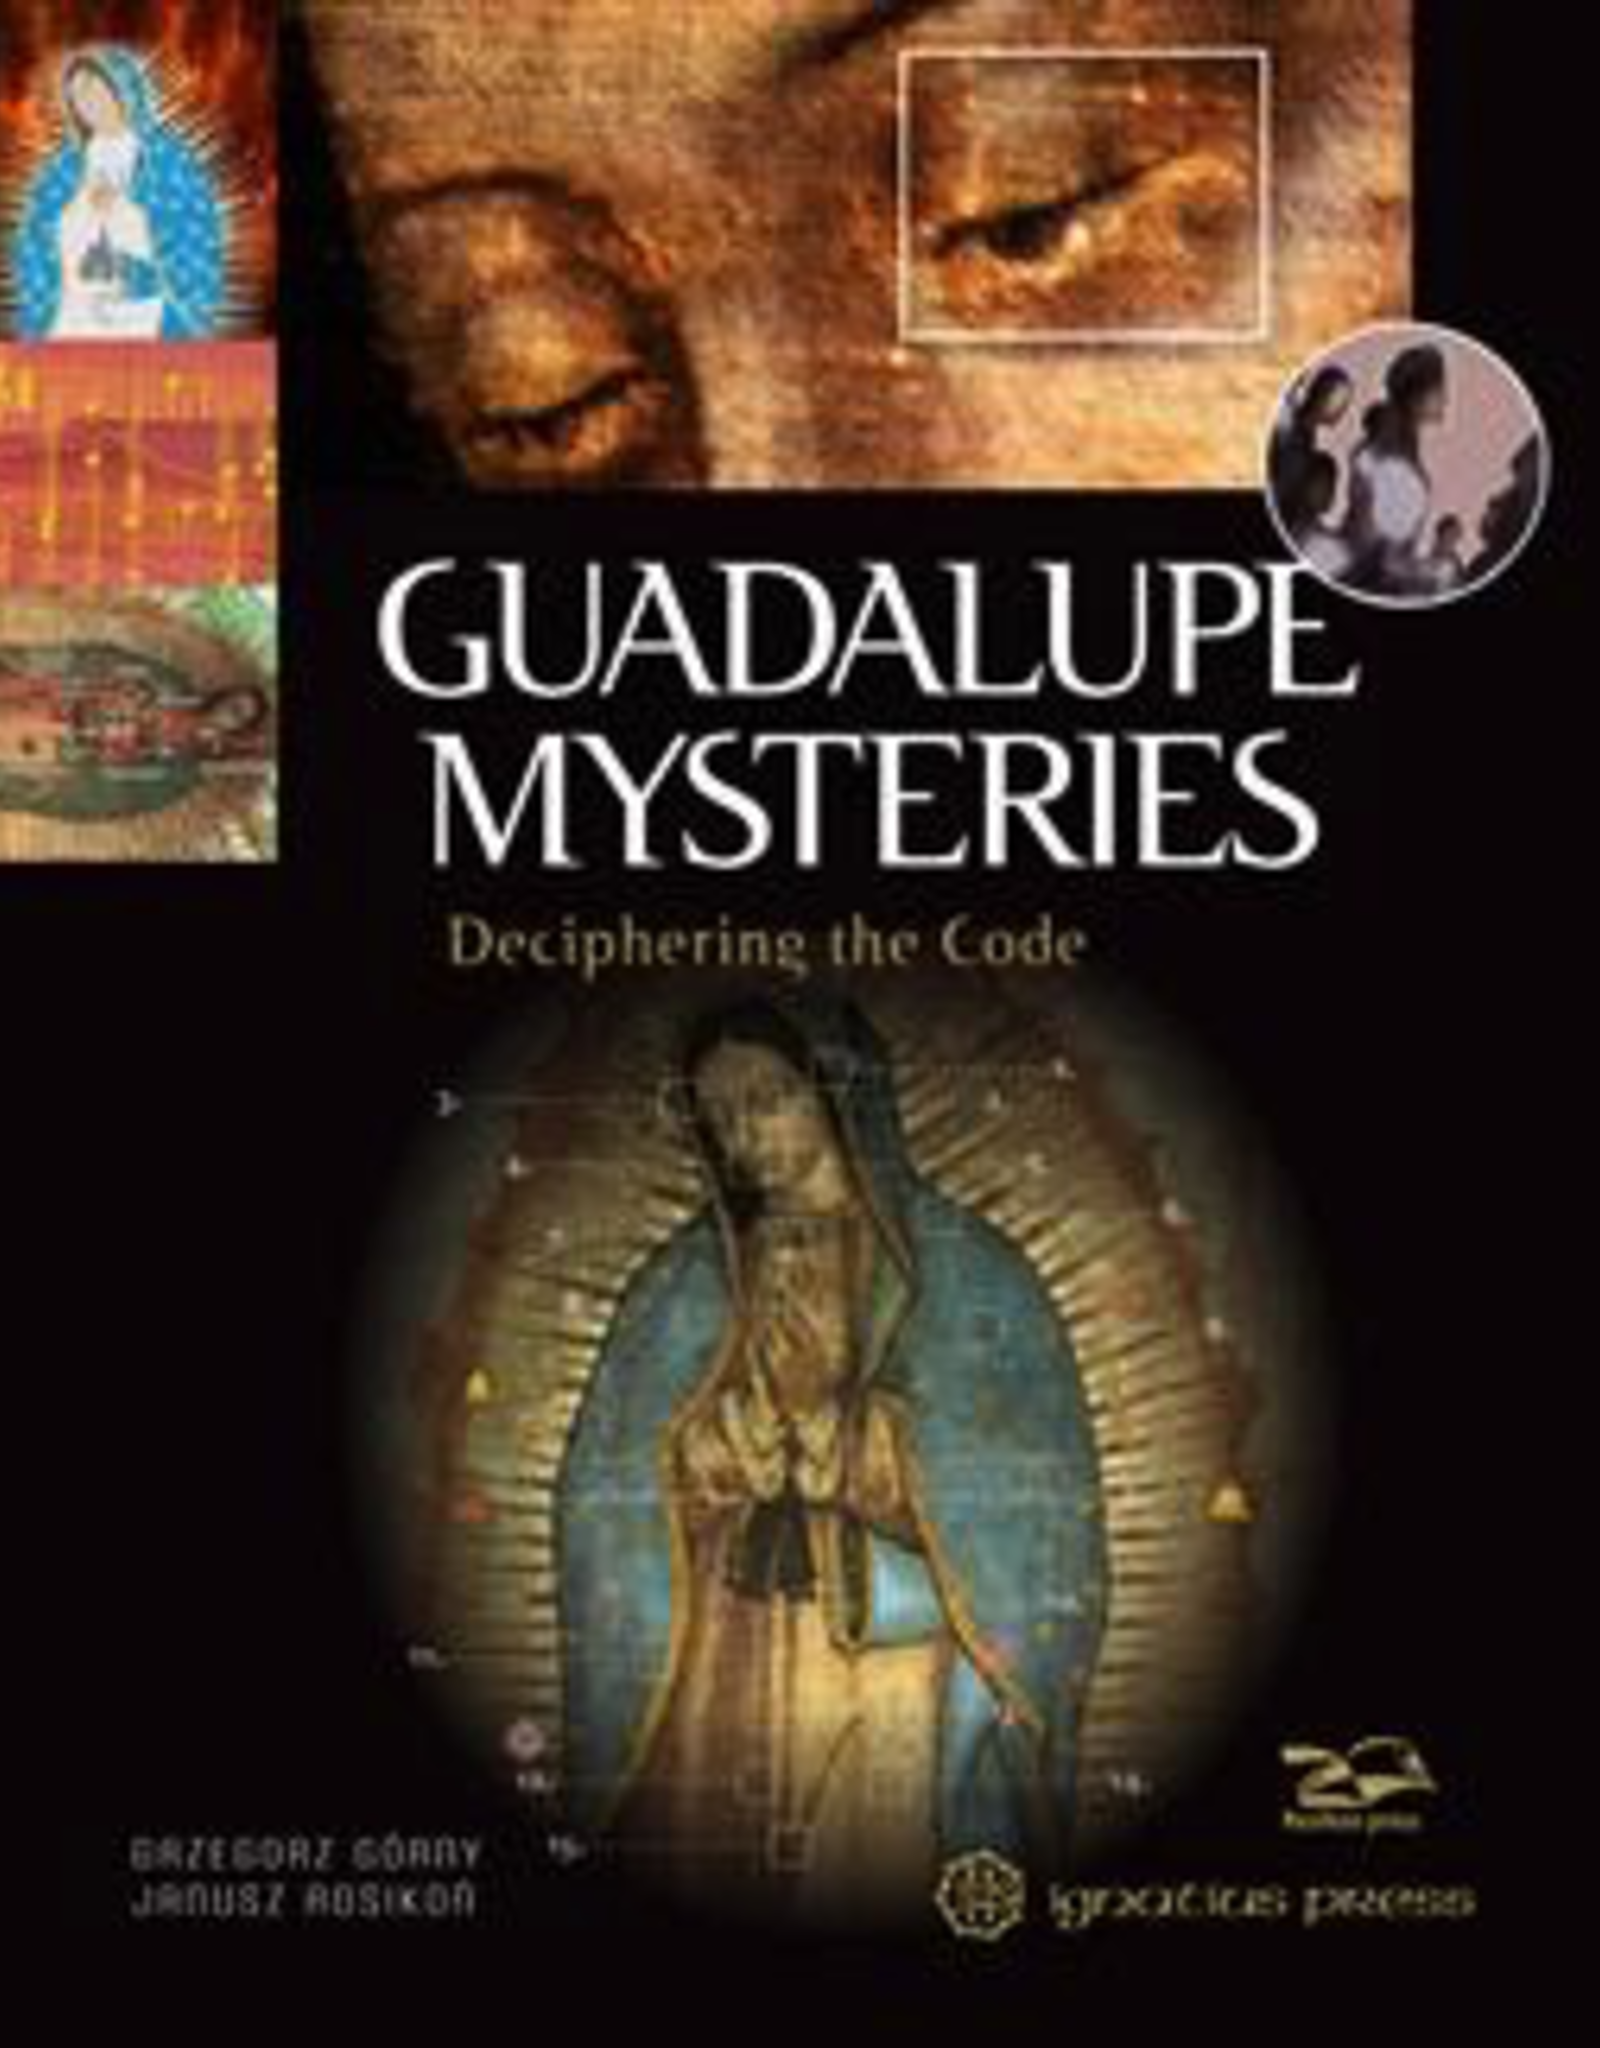 Ignatius Press Guadalupe Mysteries:  Deciphering the Code, by Gazagorz Gorny (Hardcover)